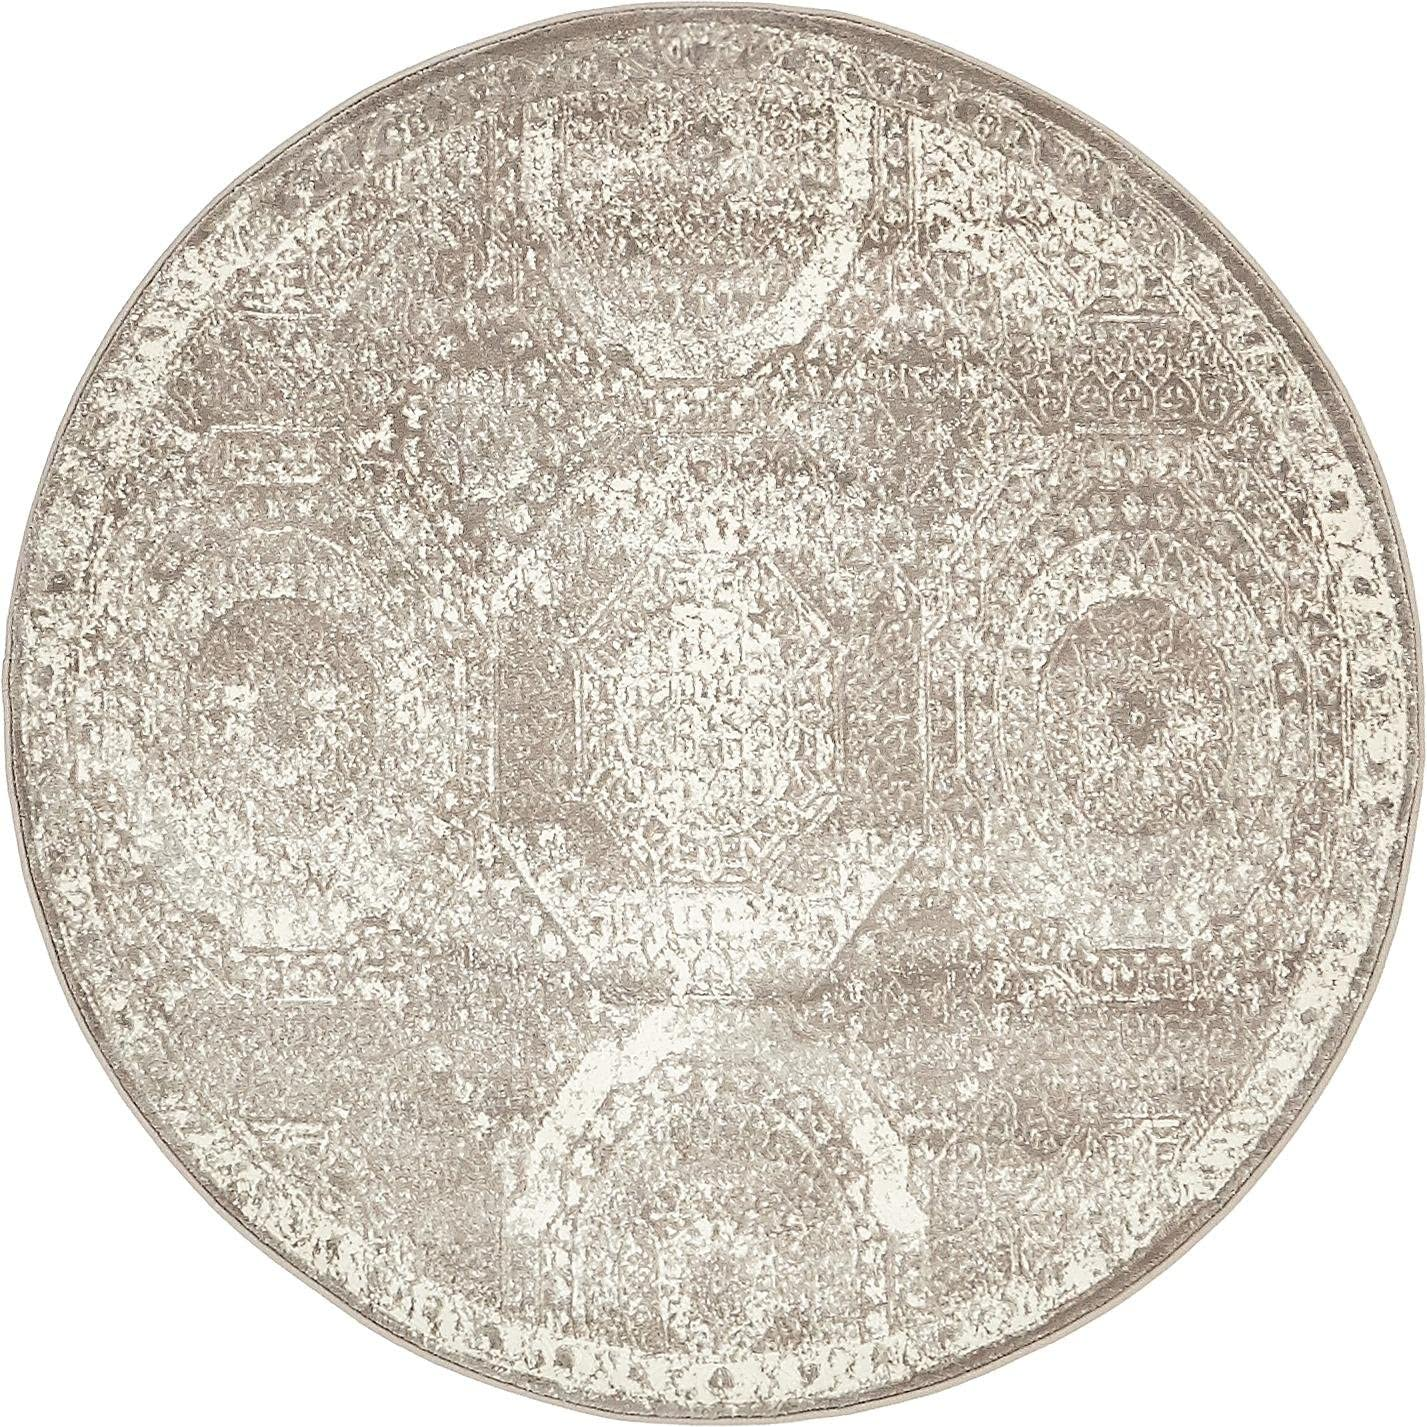 Unique Loom New Classical Collection Traditional Distressed Vintage Classic Gray Round Rug 4 0 x 4 0